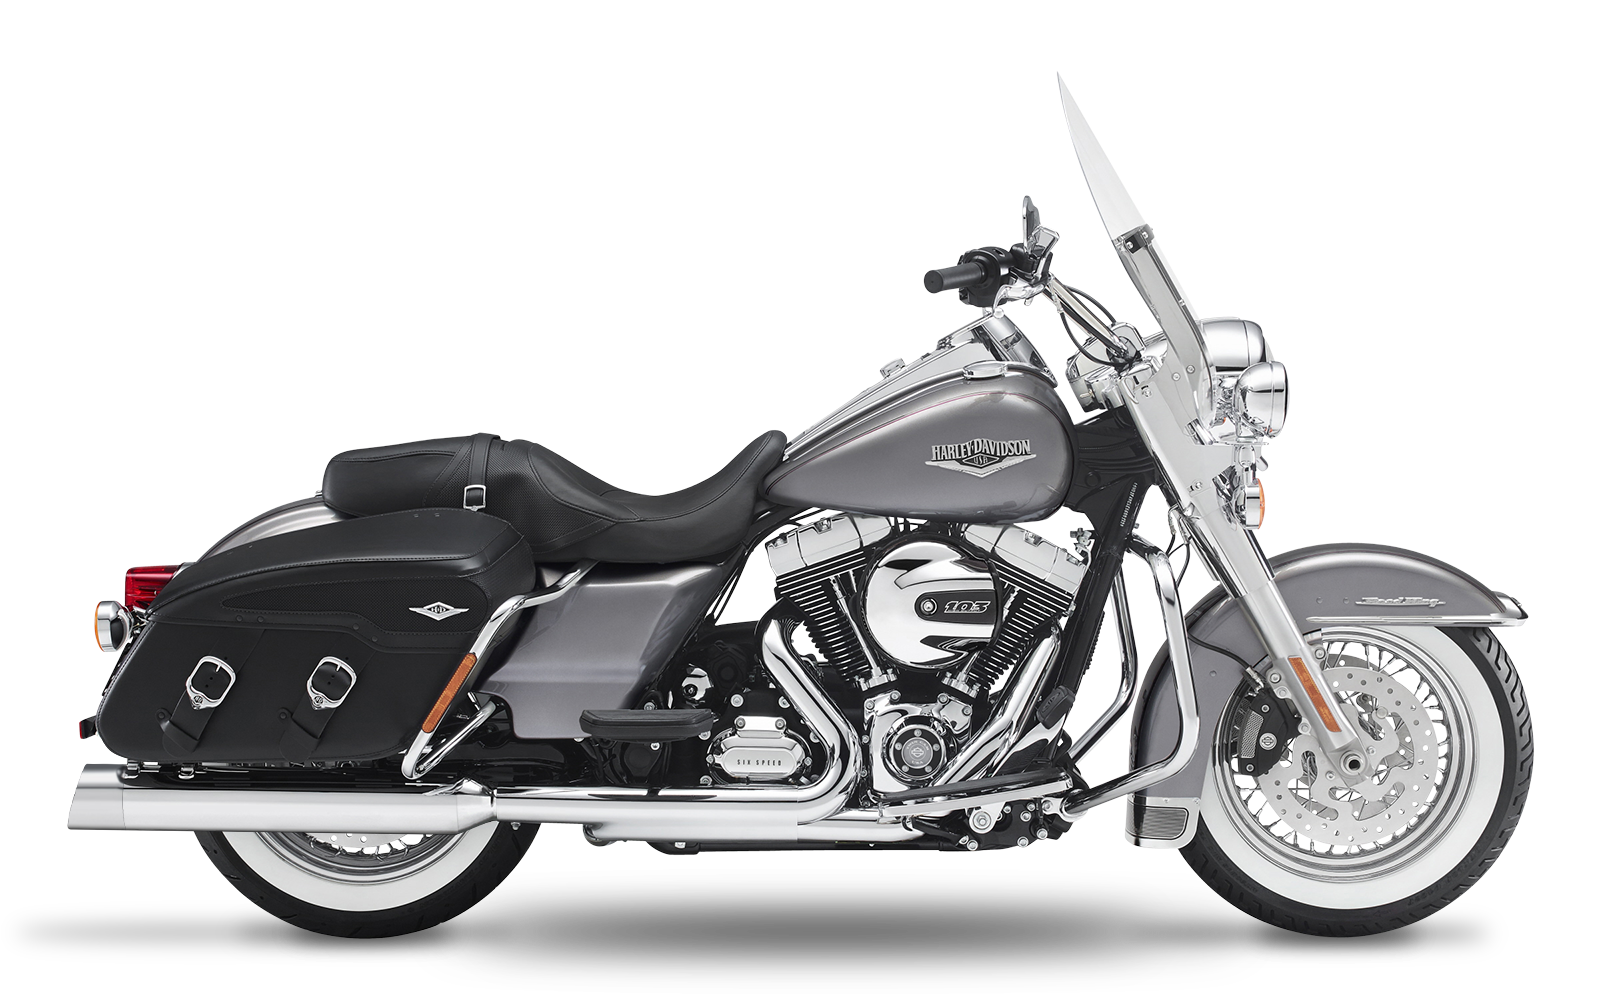 Touring - Road King Custom - TC96 - 2007-2008 - Endtöpfe